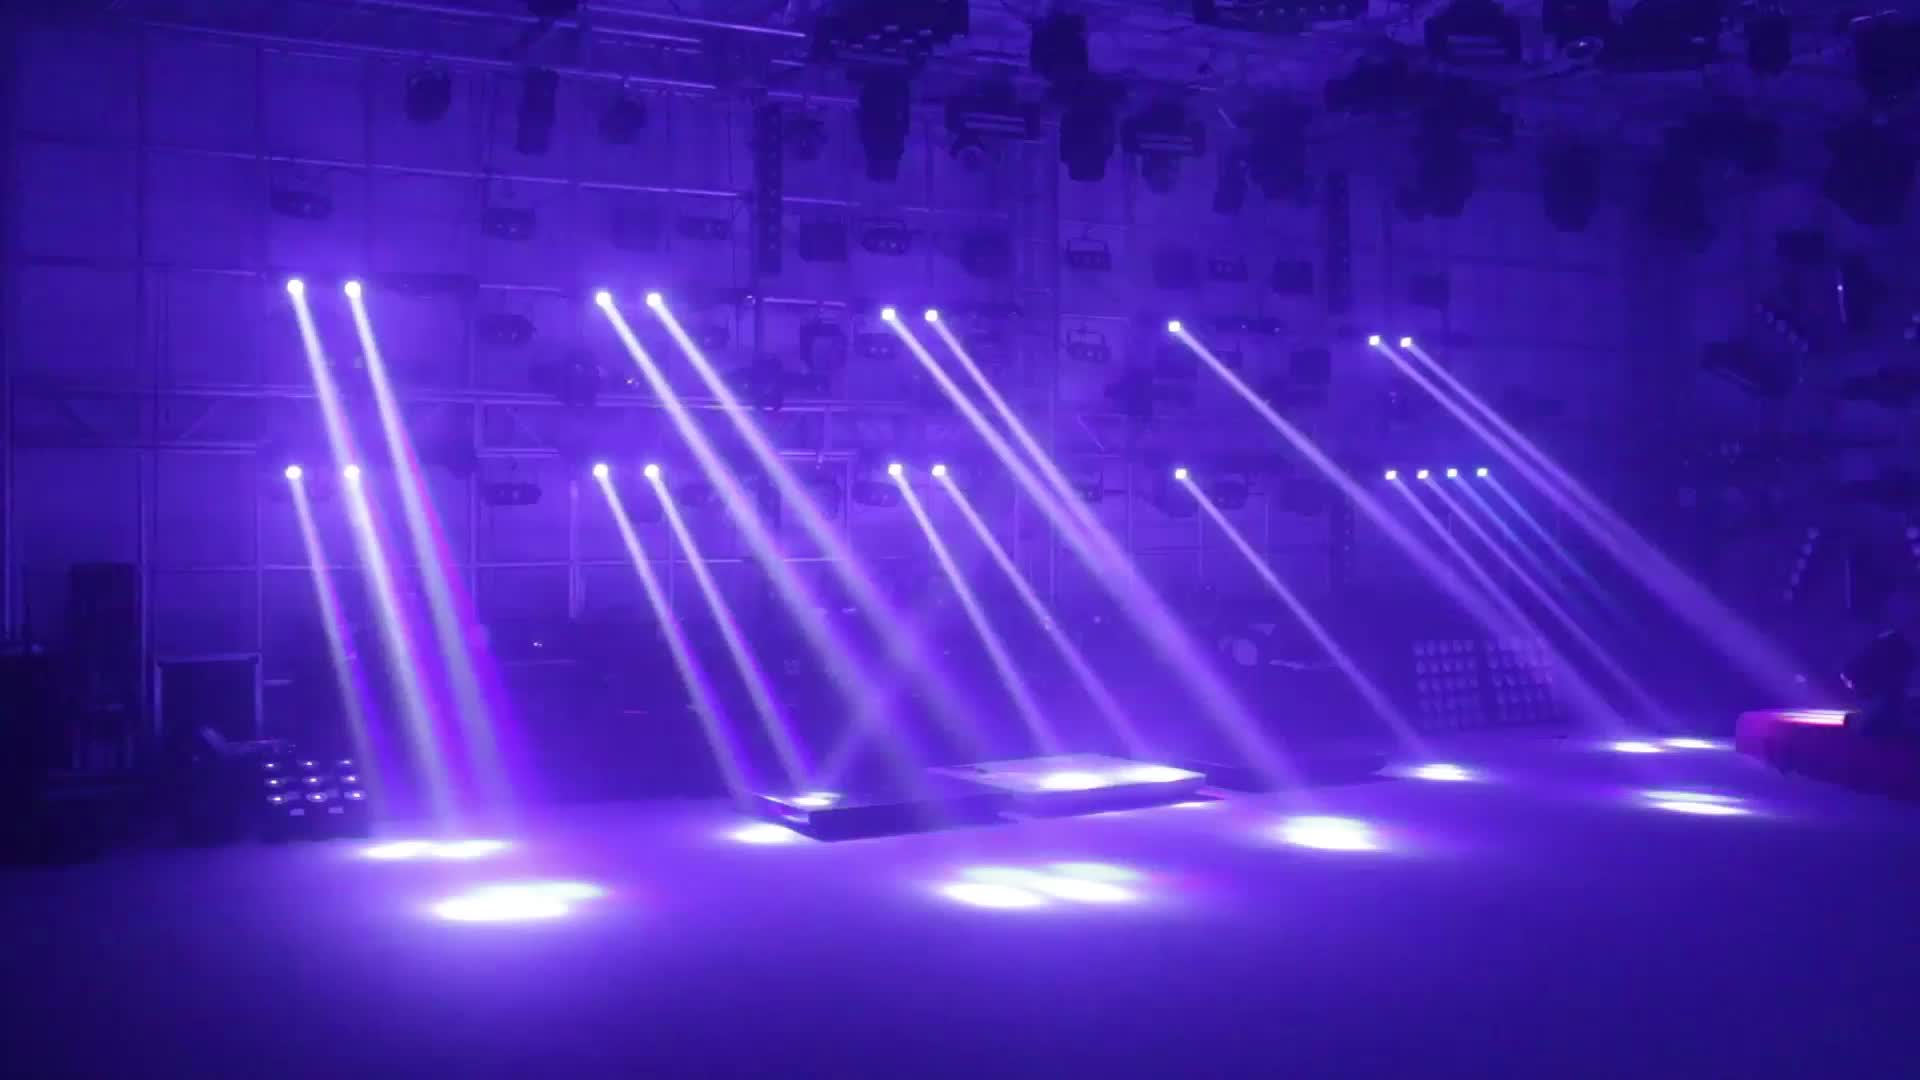 Meglio Neon O Led pro dj disco event lighting 4x32w rgbw 4in1 led 4heads dmx sharp dj beam  bar moving head stage lights for stage equipment set, view led stage light,